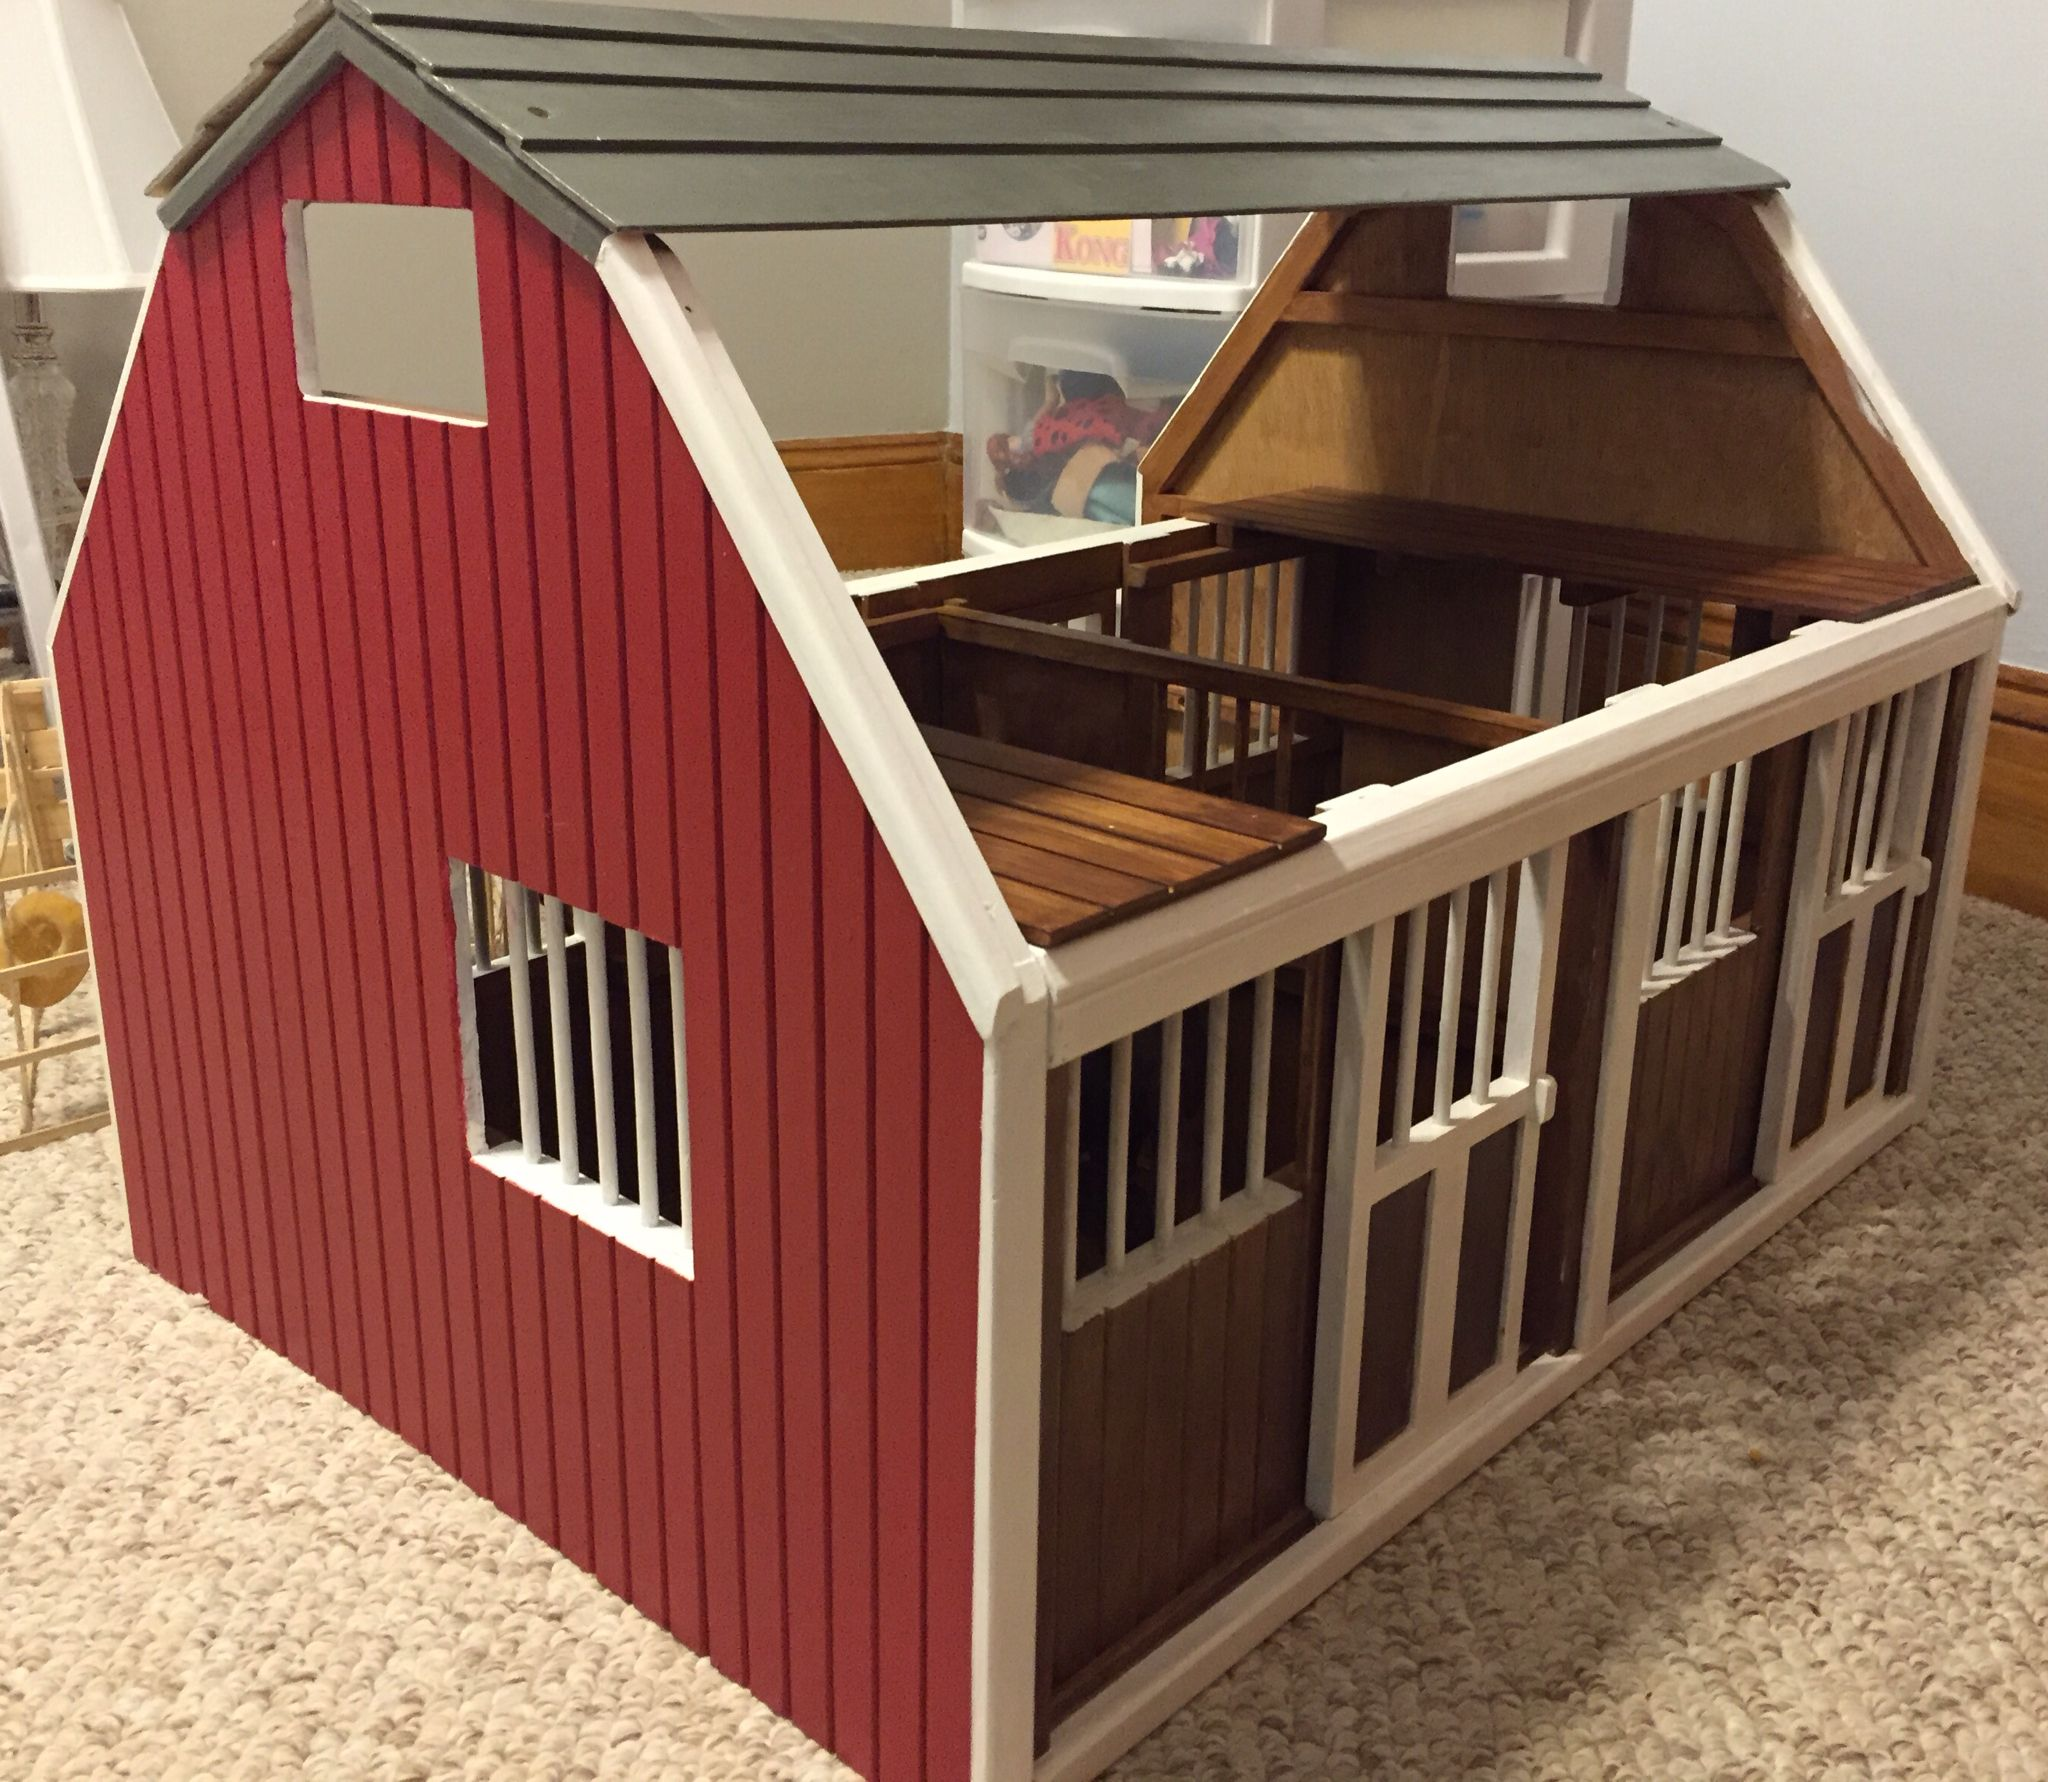 Breyer Horse Barn Painted By Me For Her Collection The Raw Wood Was All Stained And Boring Anyway Breyer Diy Toybarn B Toy Barn Wooden Toy Barn Kids Barn